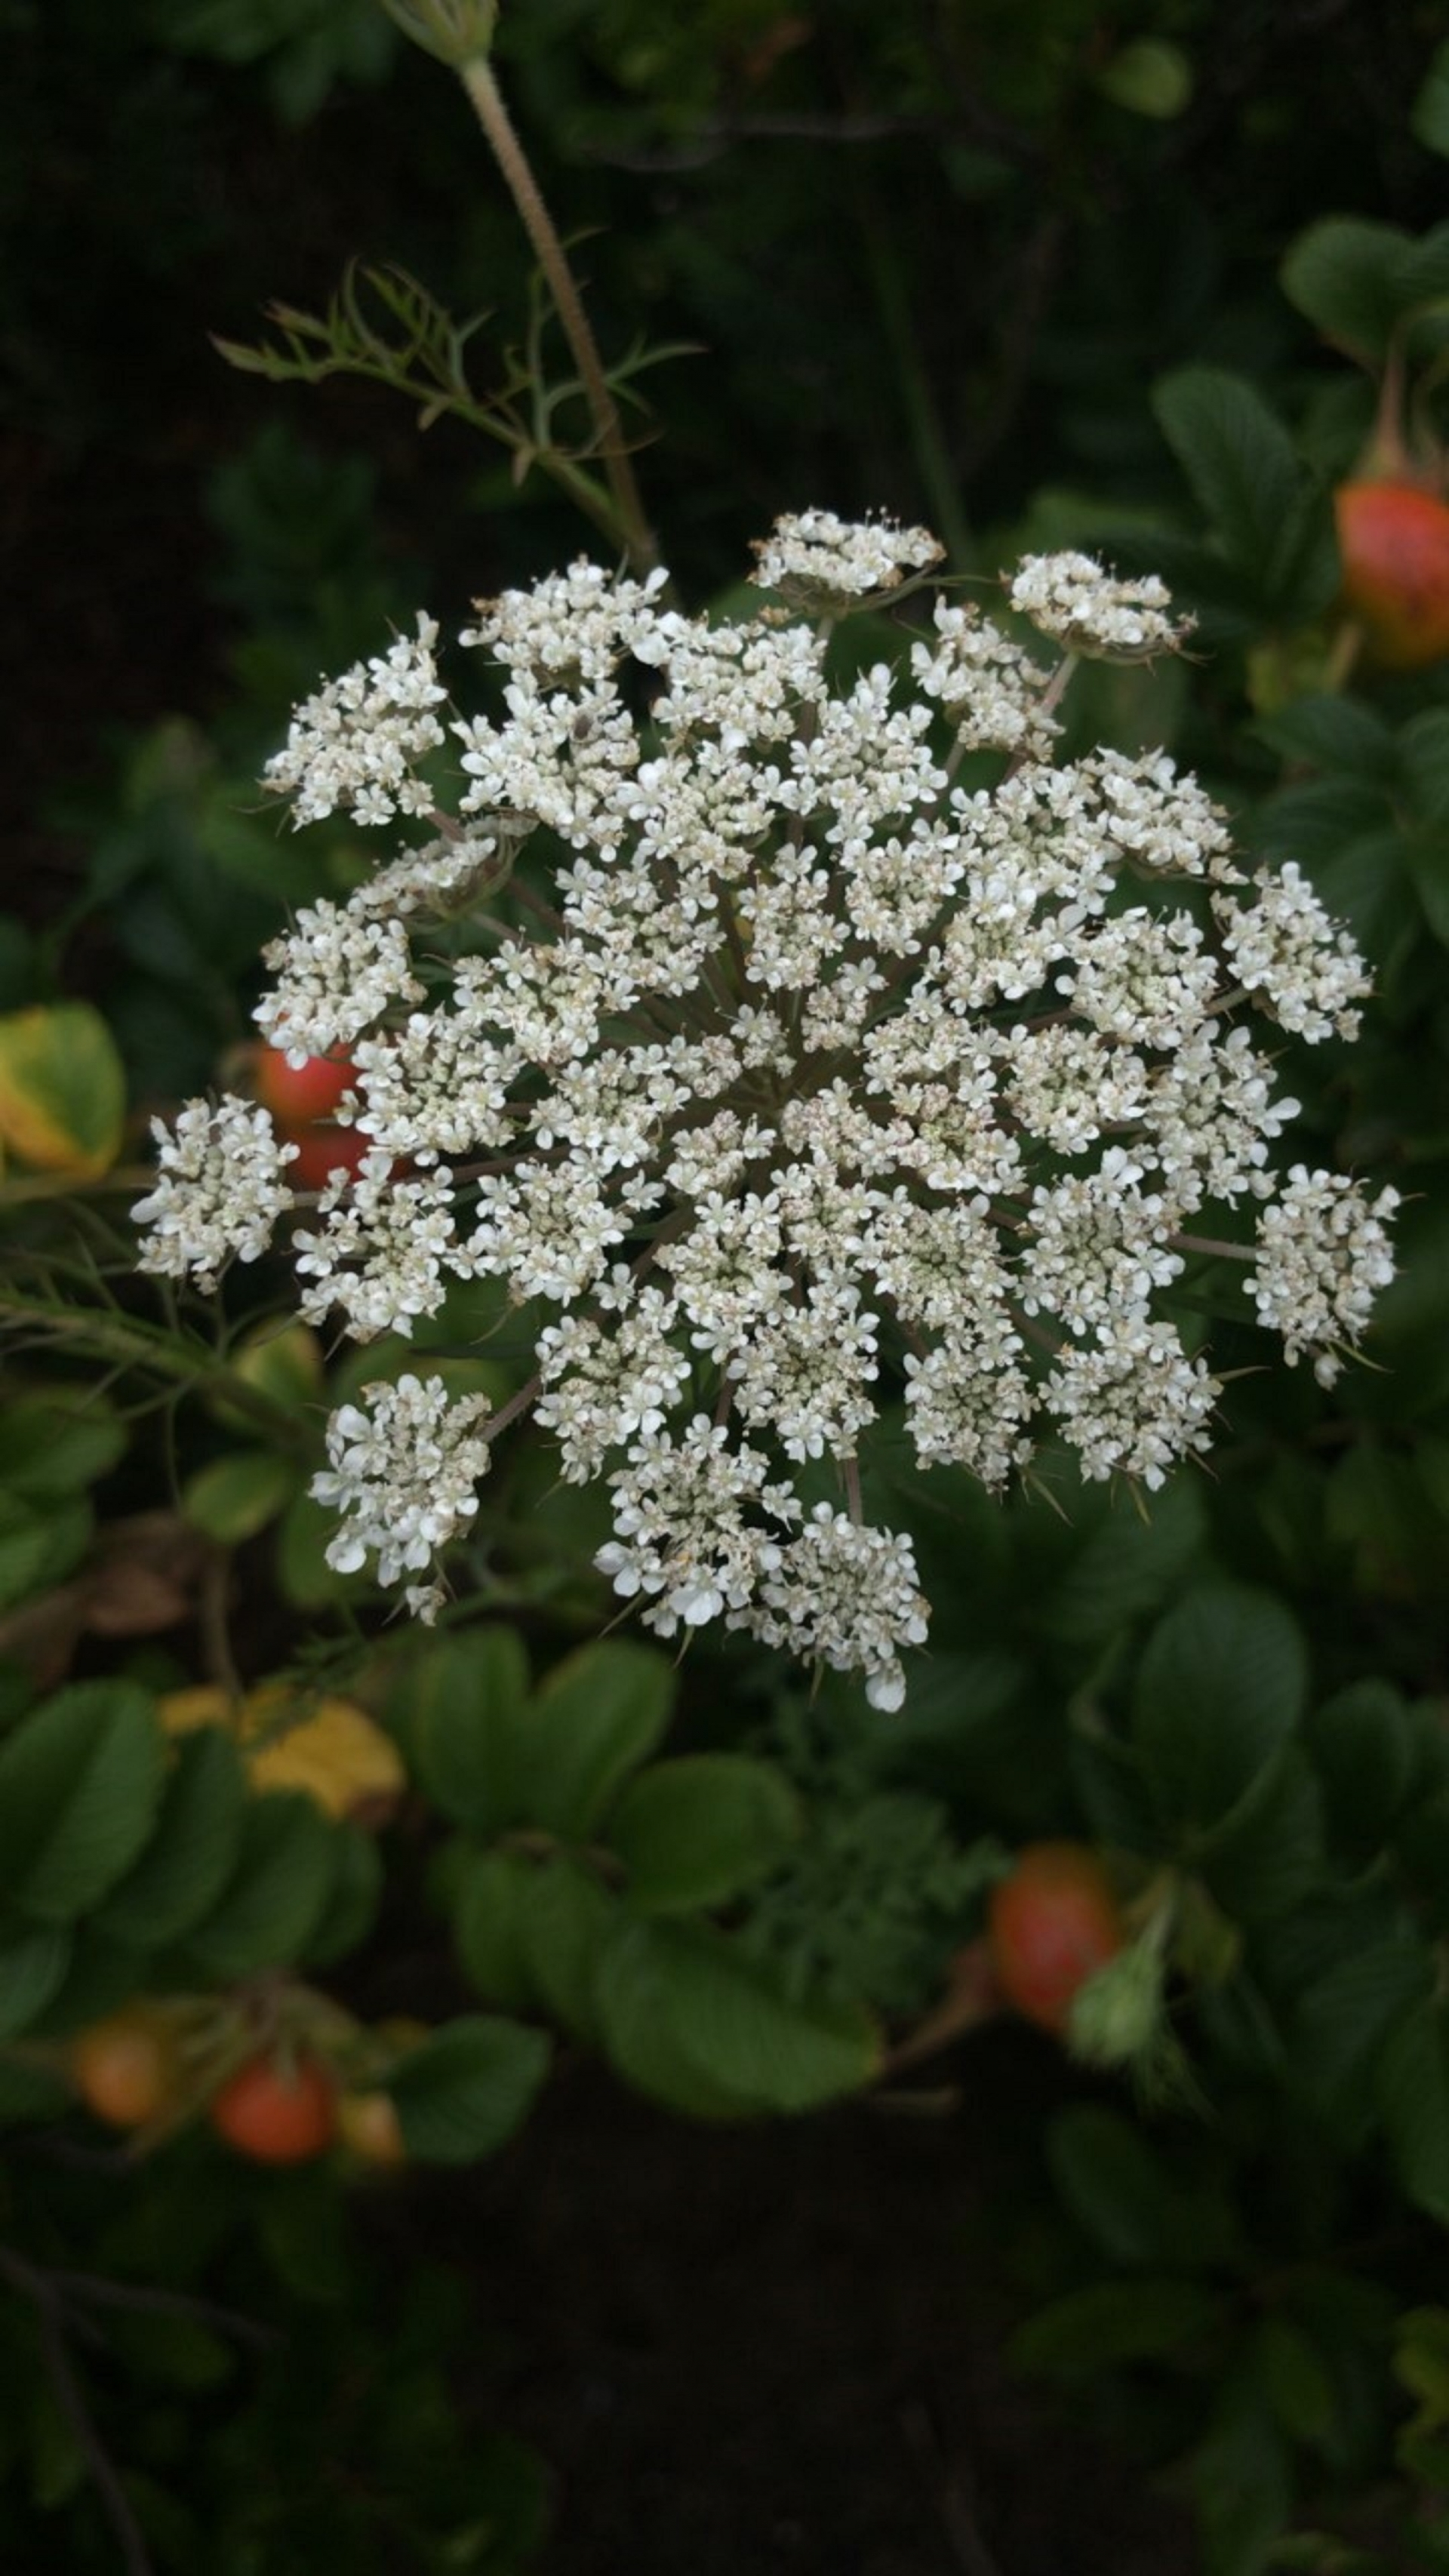 Queen Anne's Lace and rose hips